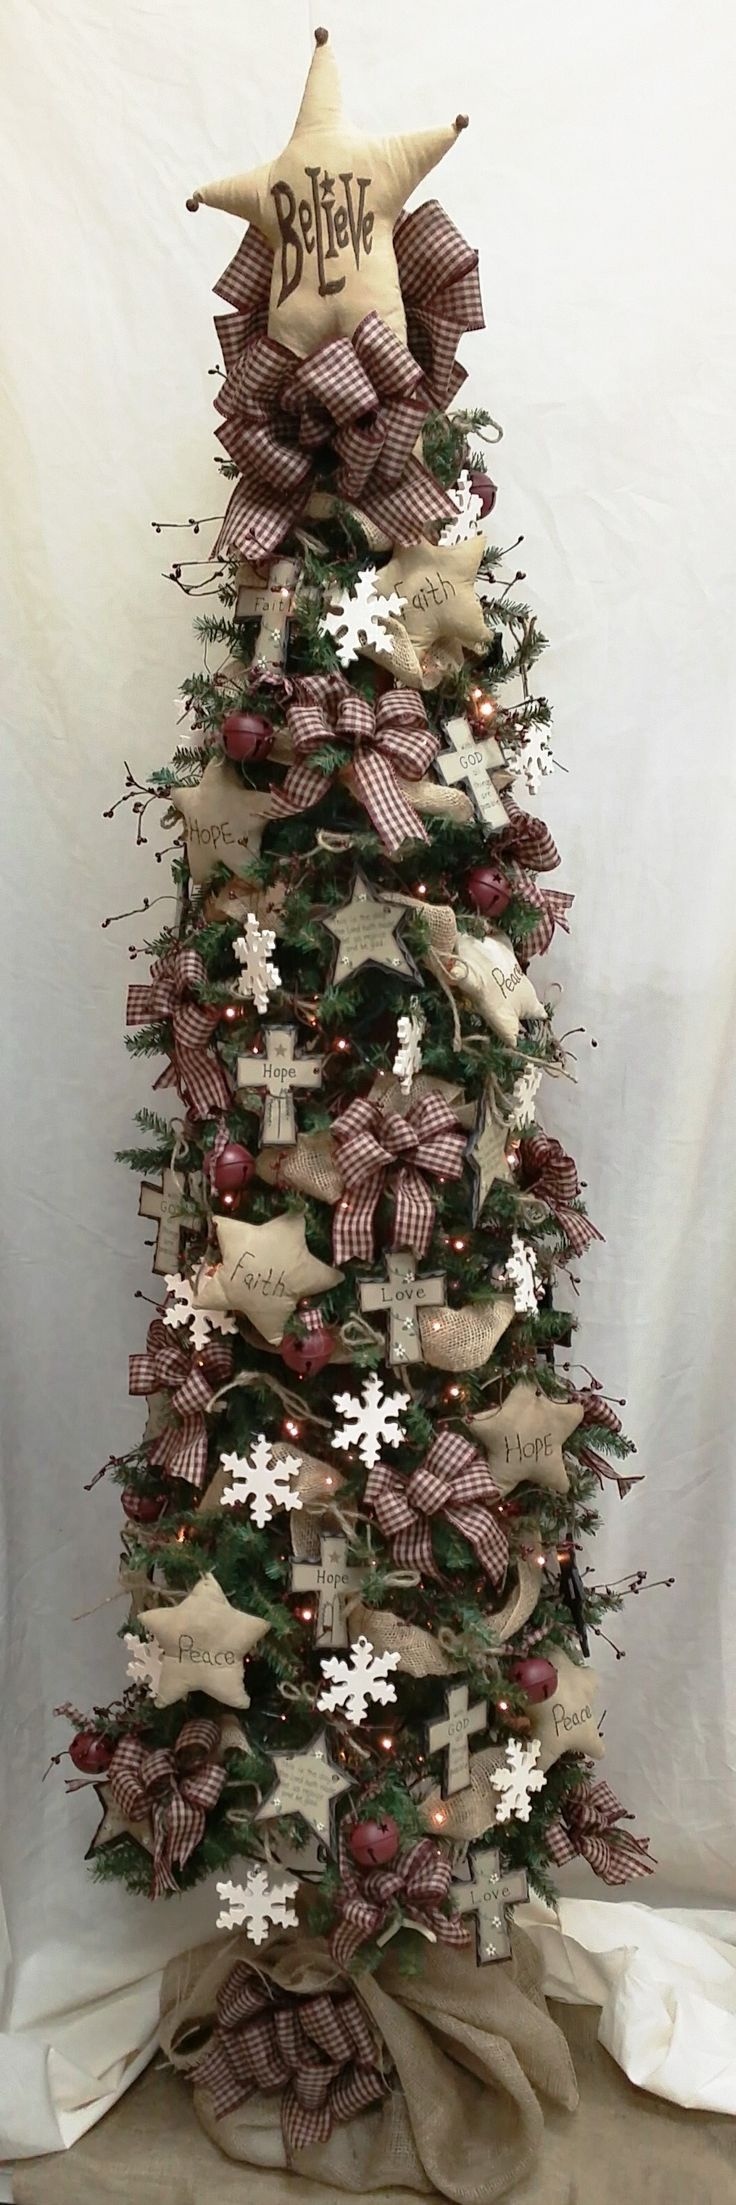 christmas tree,christmas trees,christmas lights,christmas holiday,christmas around the world,christmas cities,christmas decor,christmas decoration,christmas home decor,christmas ornaments (50) http://imgsnpics.com/christmas-tree-image/